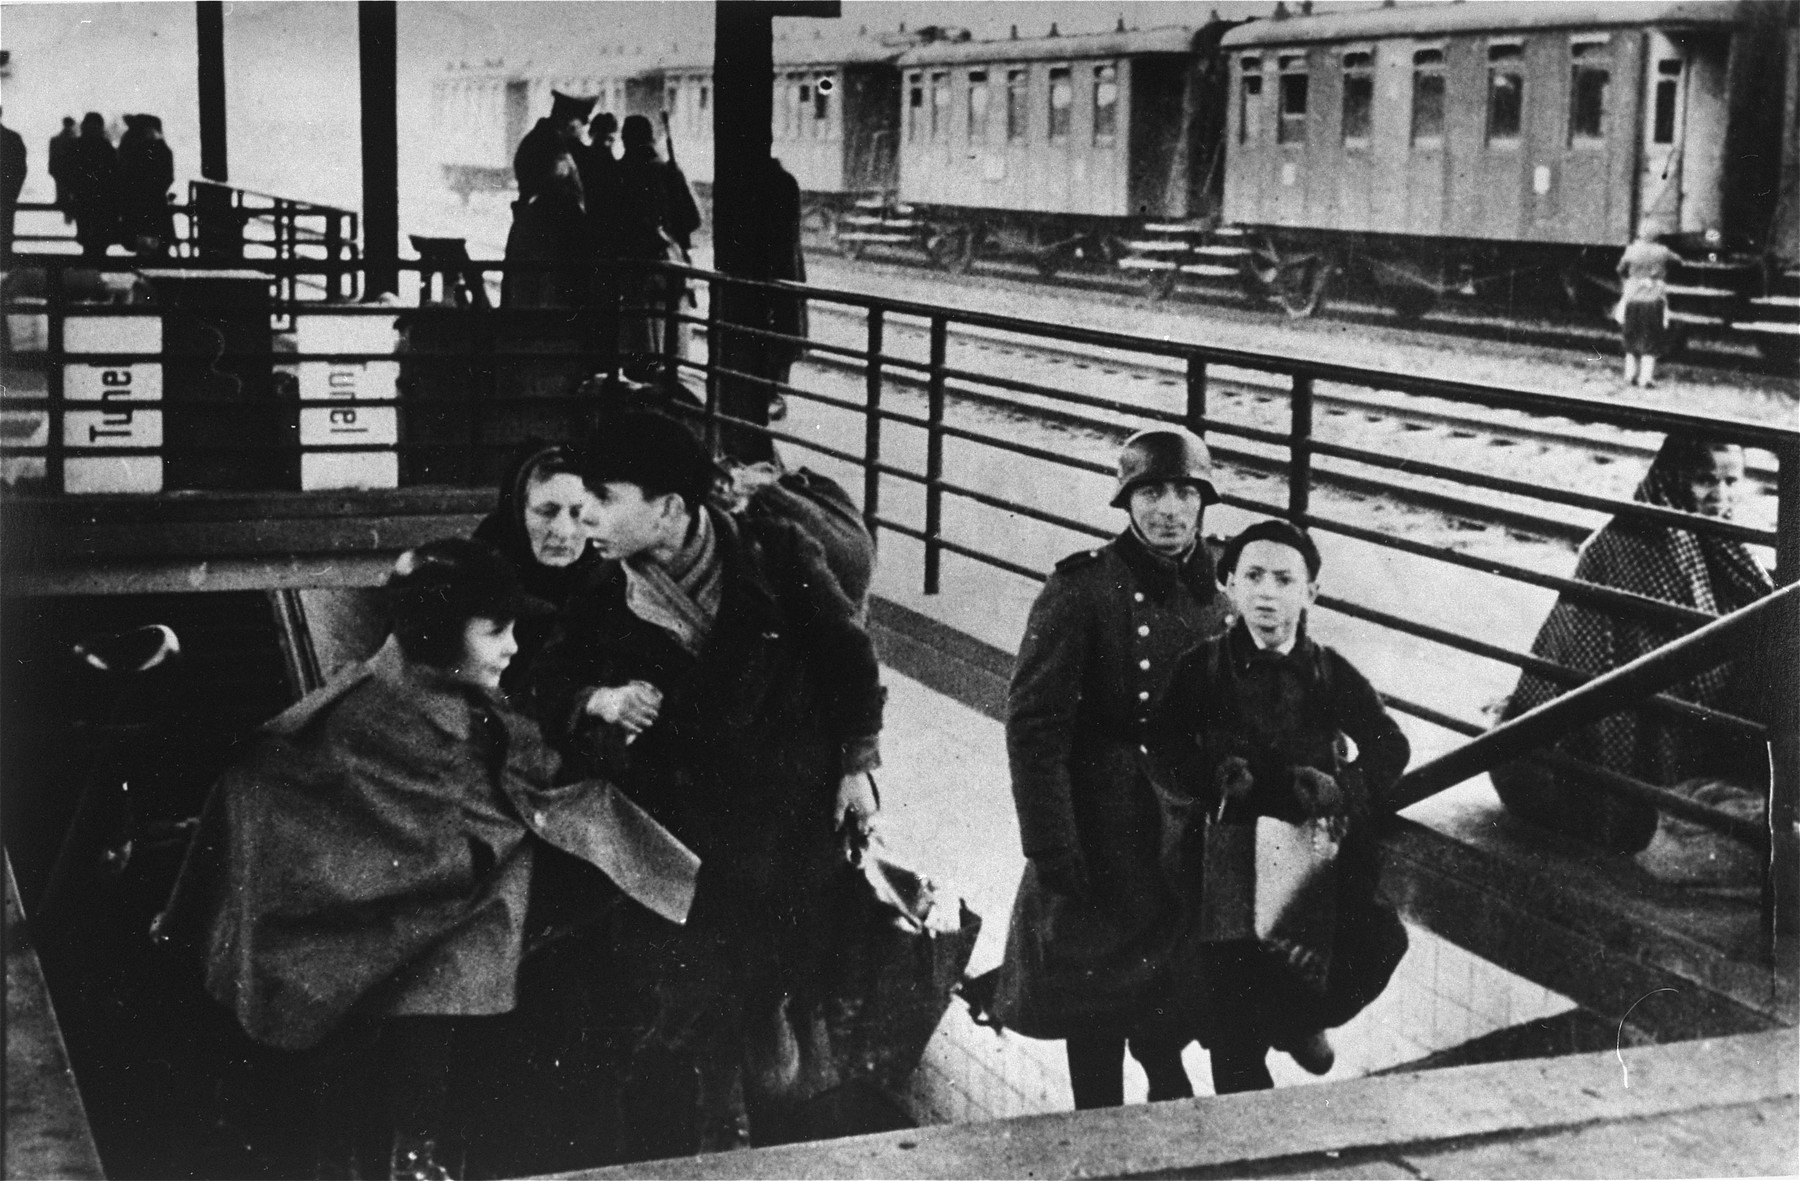 A Jewish family climbs the stairs to the train platform at the railway station during a deportation action from the Krakow ghetto.